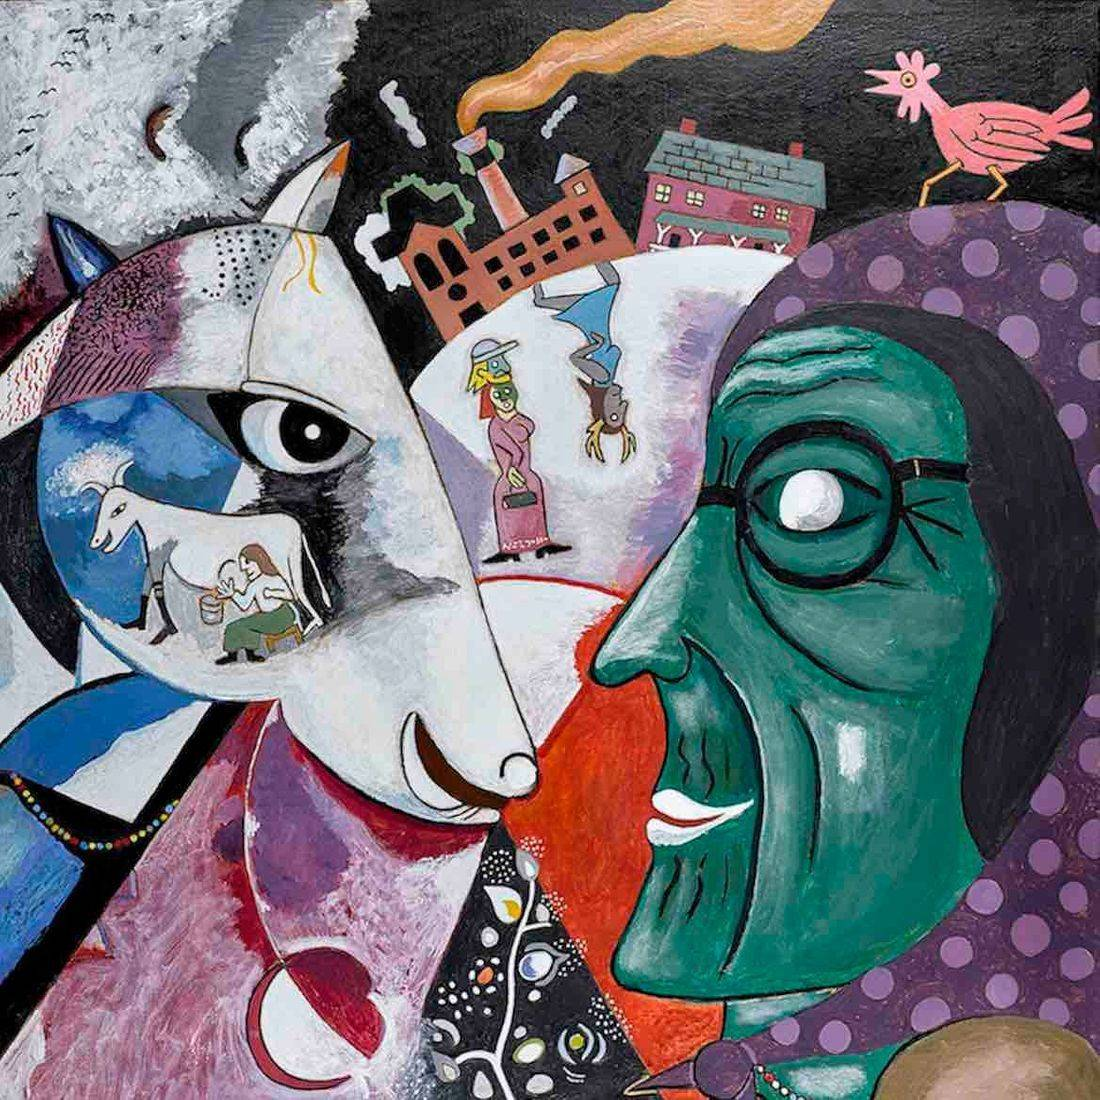 Marc Chagall, I and the Village, Grandma, Anthony Mill, Chicken, Babushka